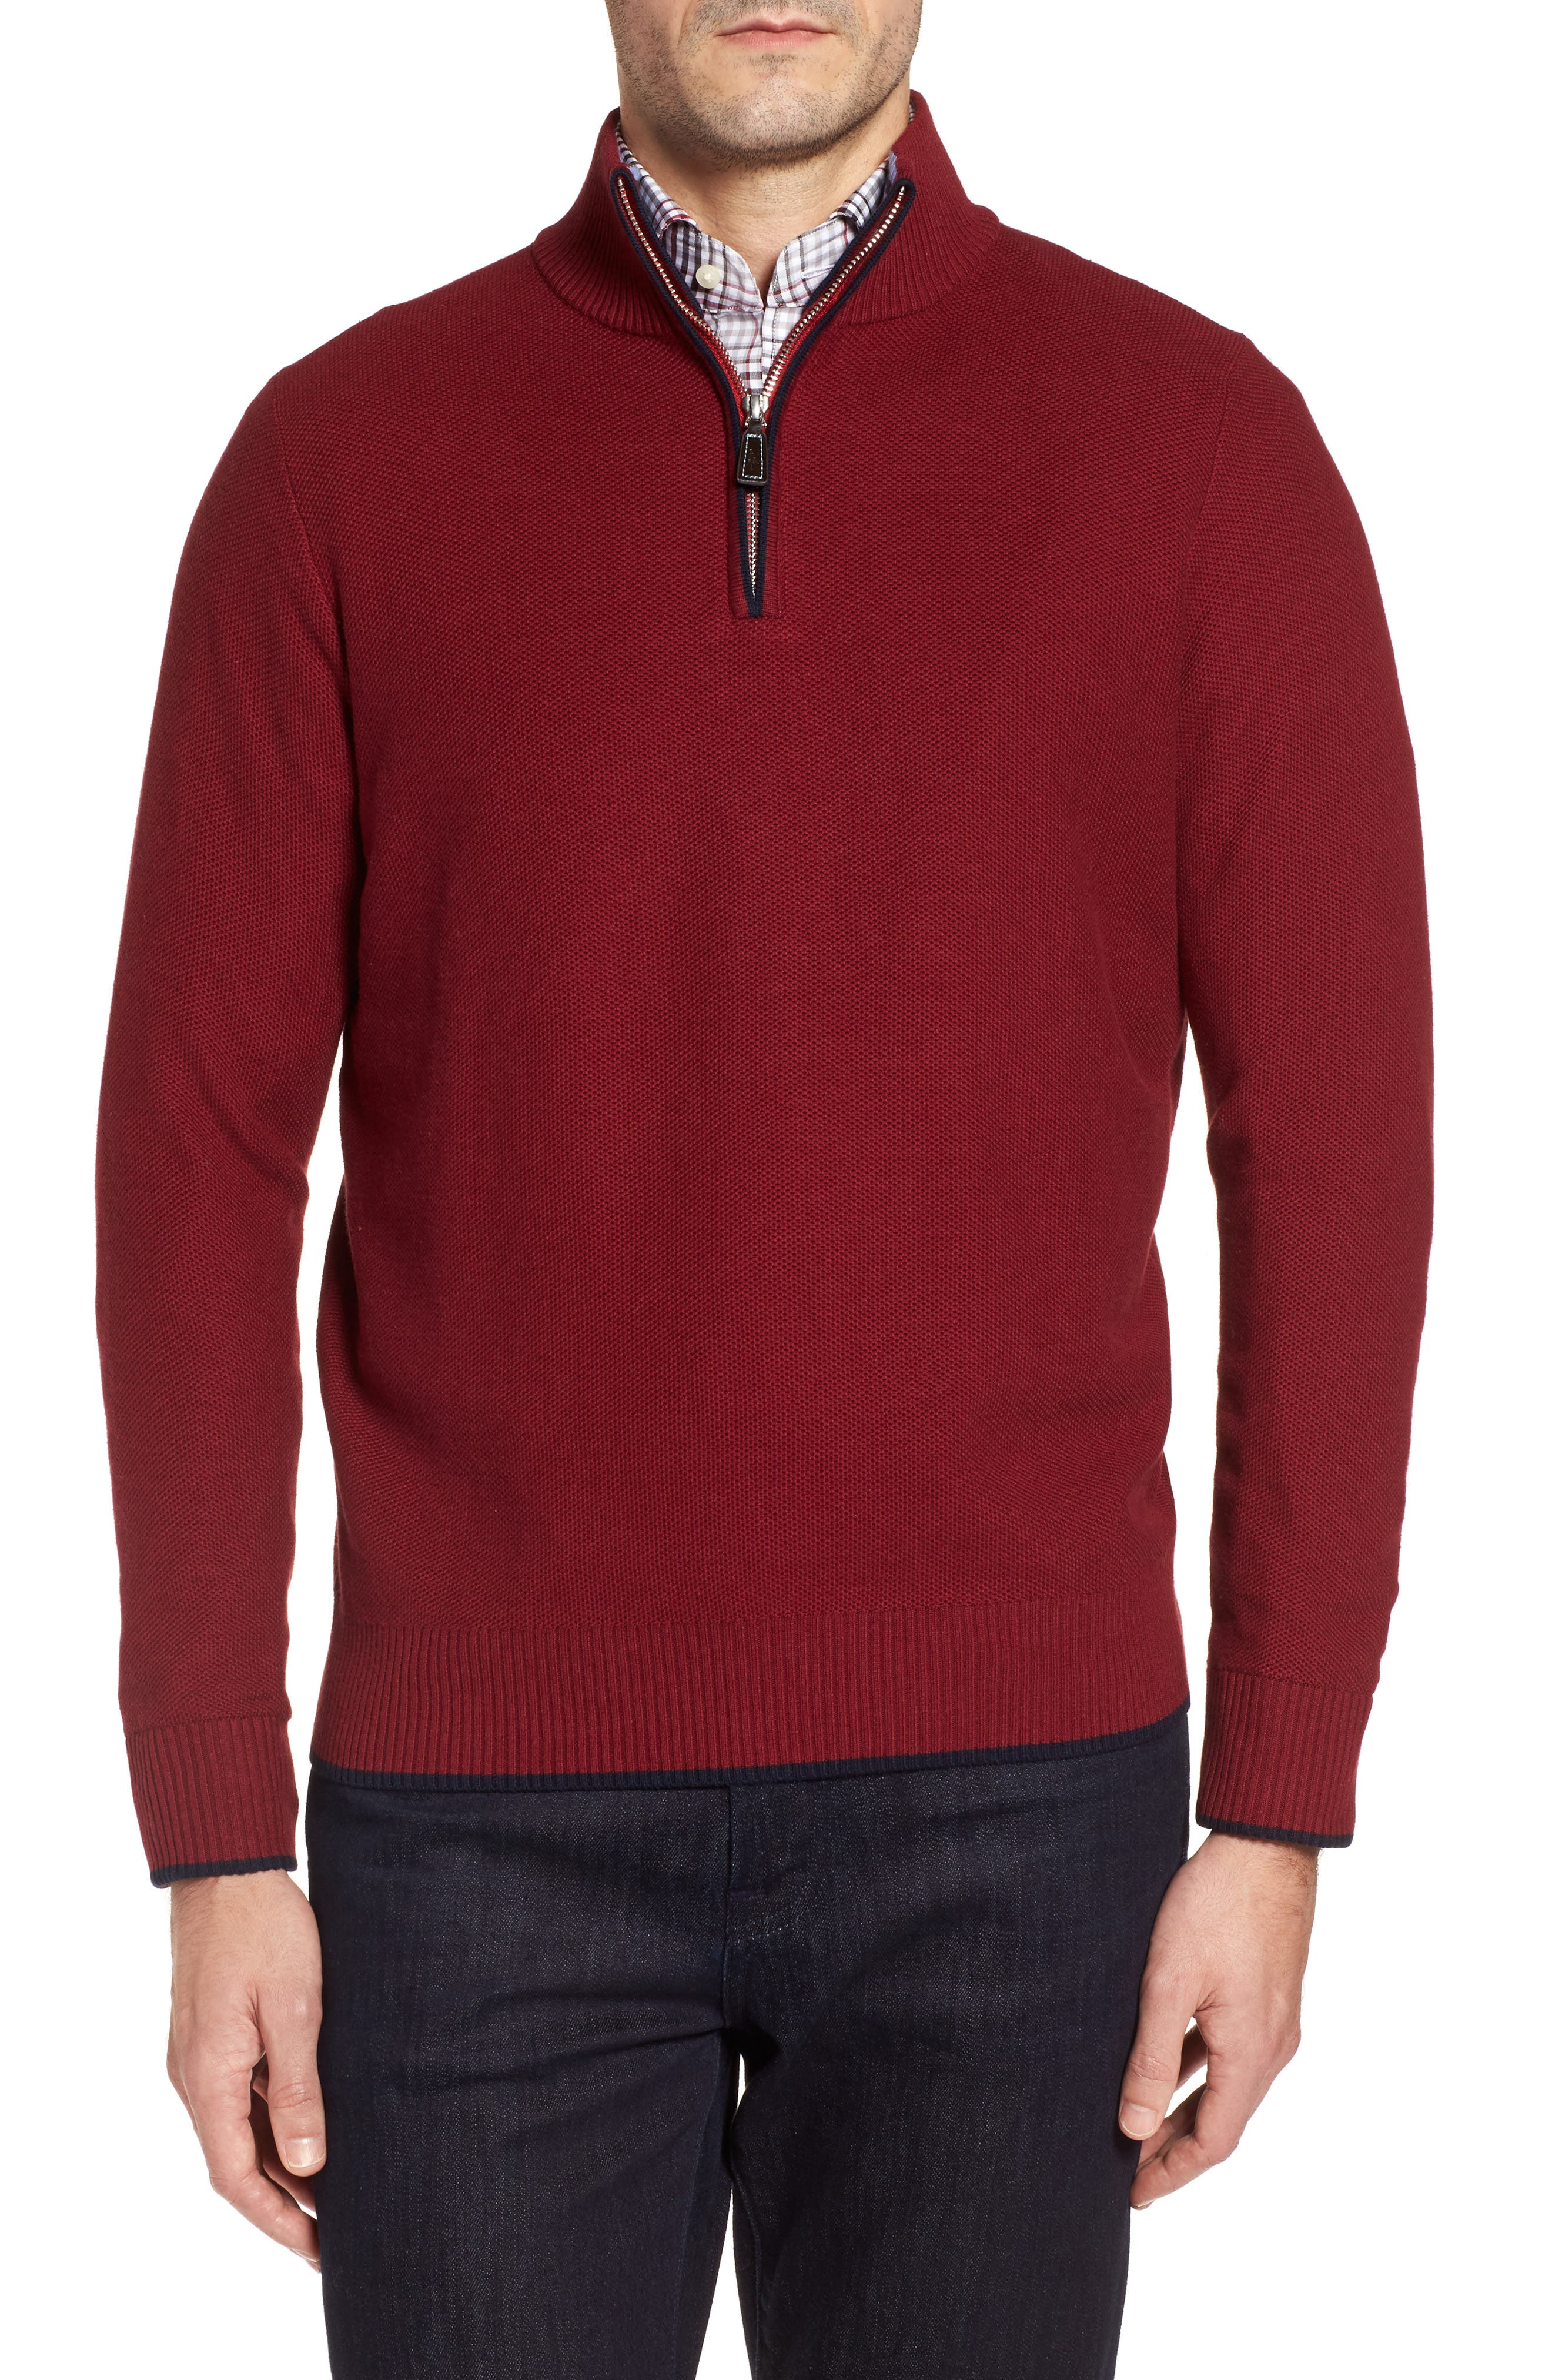 Alternate Image 1 Selected - TailorByrd Prien Tipped Quarter Zip Sweater